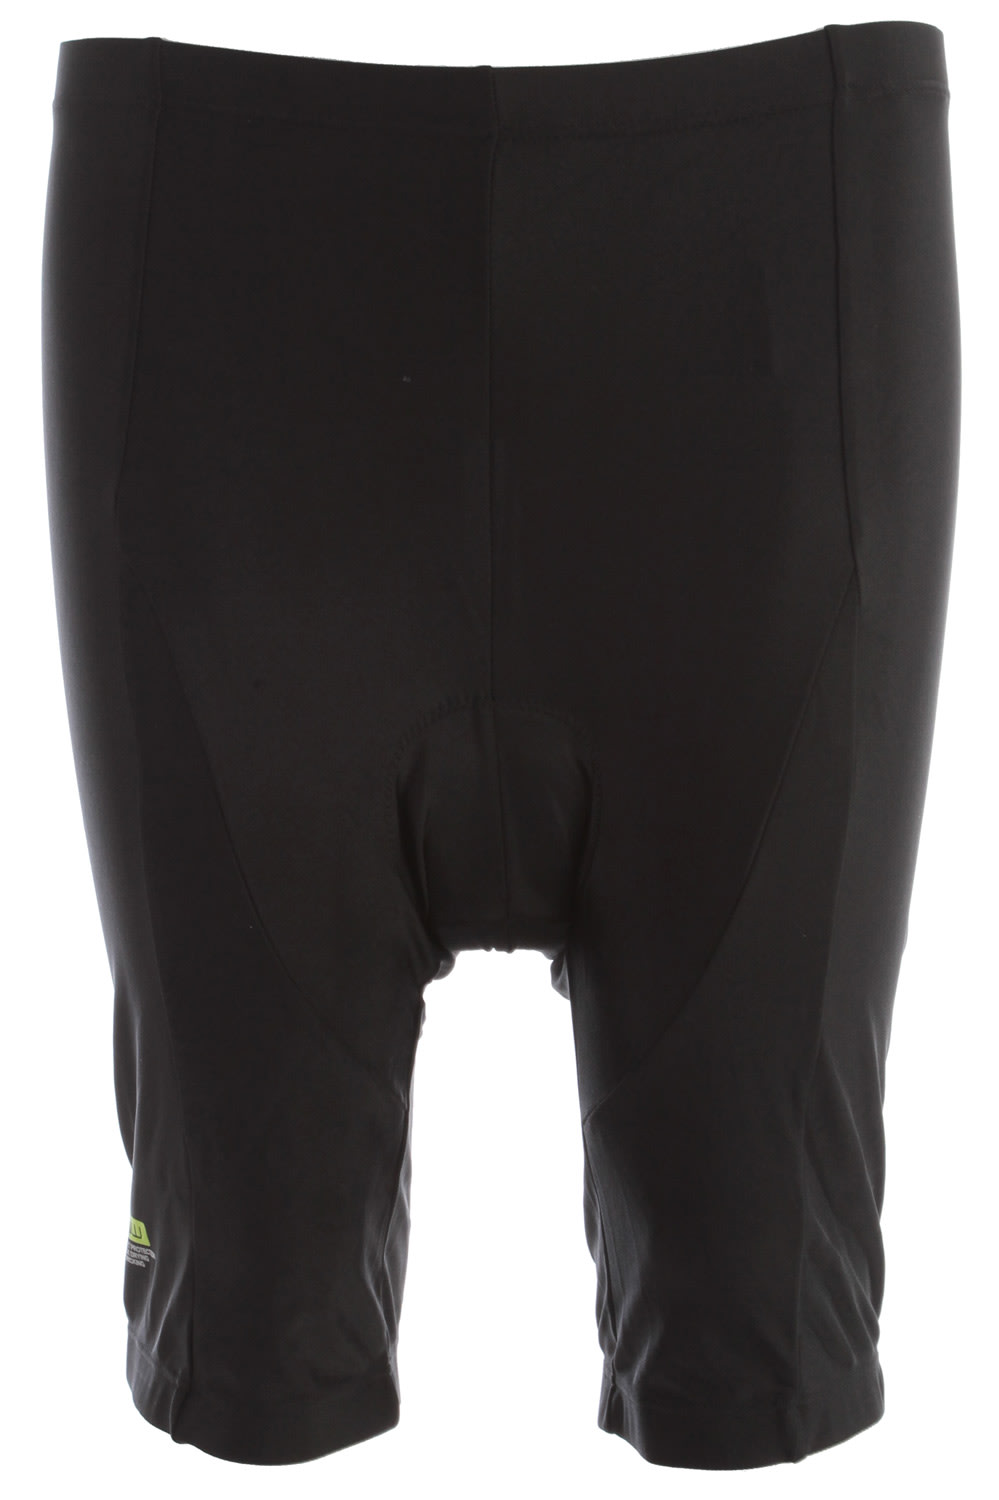 Image of 2117 of Sweden Motala Cycling Shorts